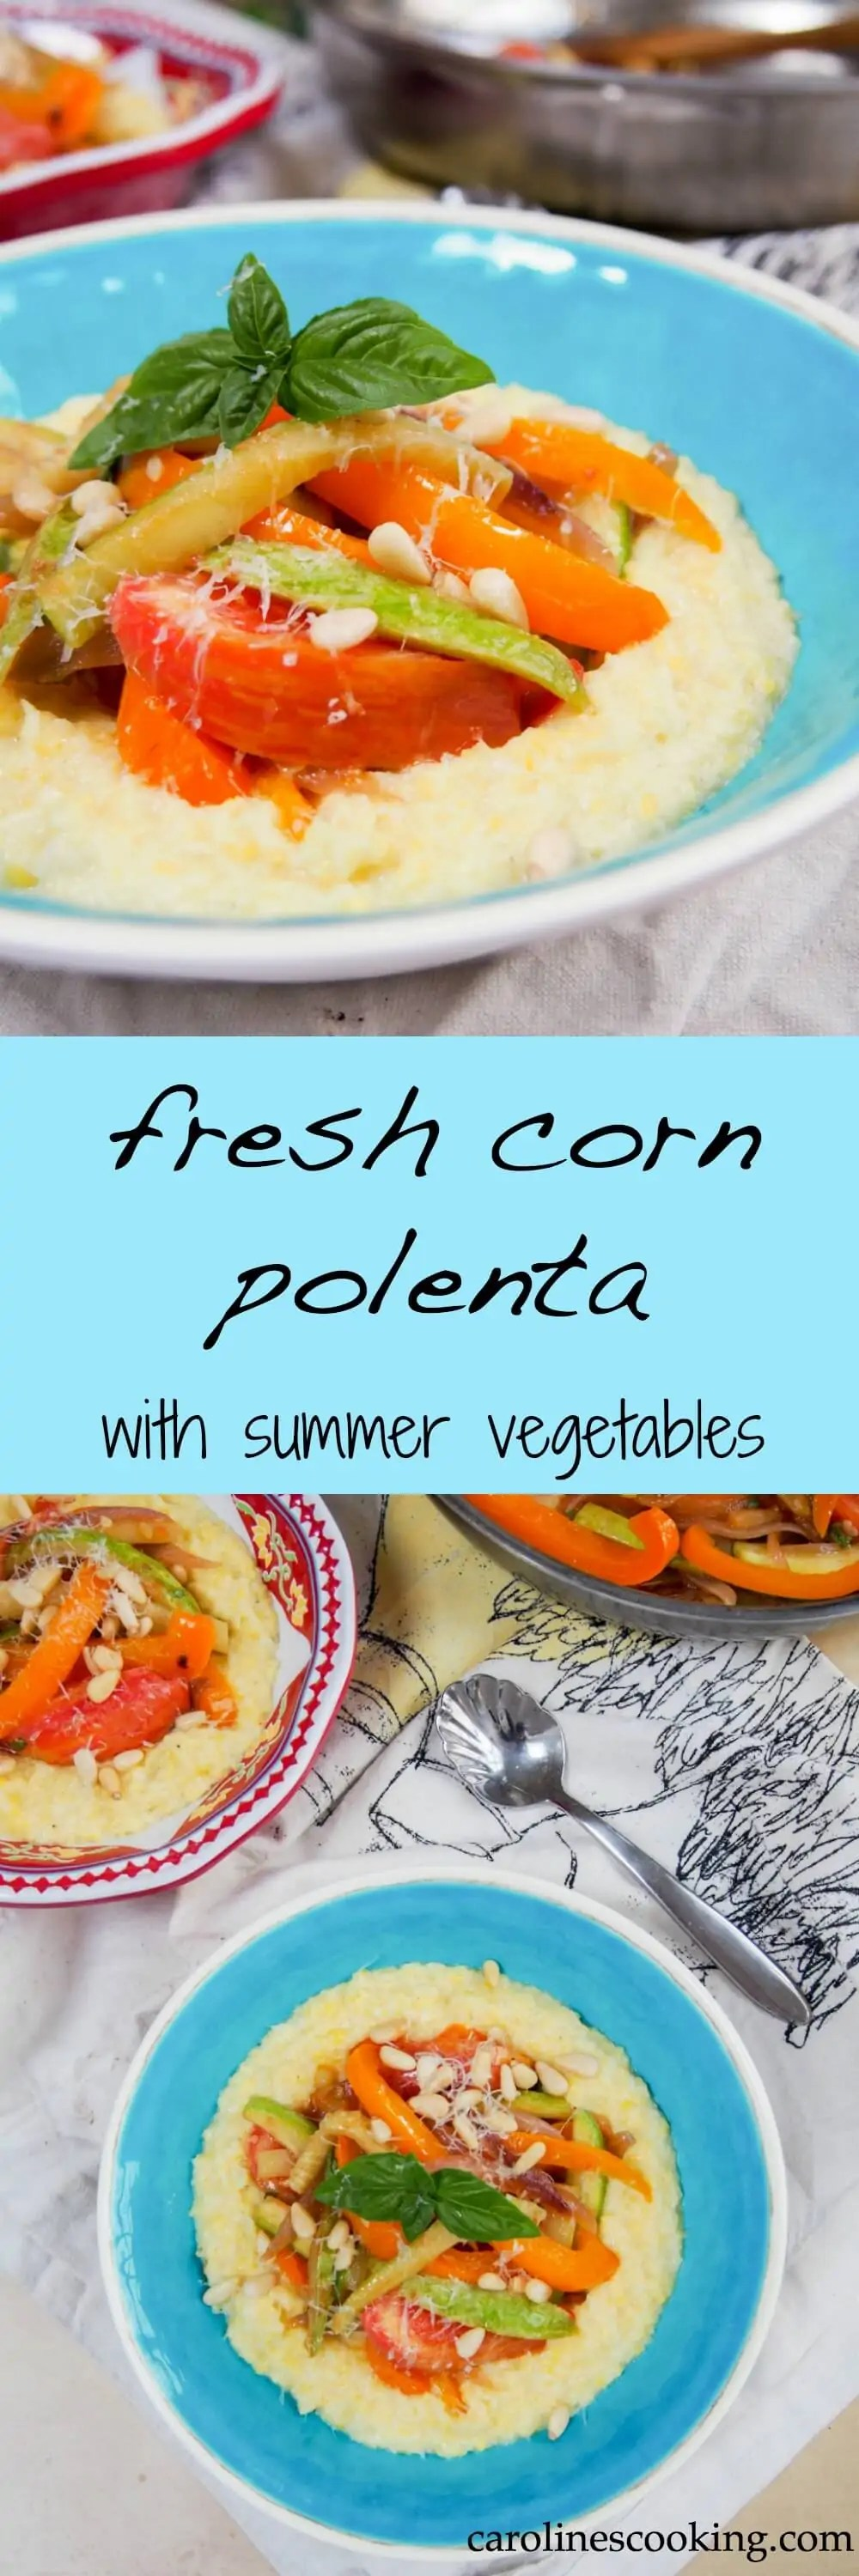 Fresh corn polenta with summer vegetables is a delicious way to enjoy the comfort-factor of polenta with the fresh flavor of summer corn. Such a tasty vegetarian meal.